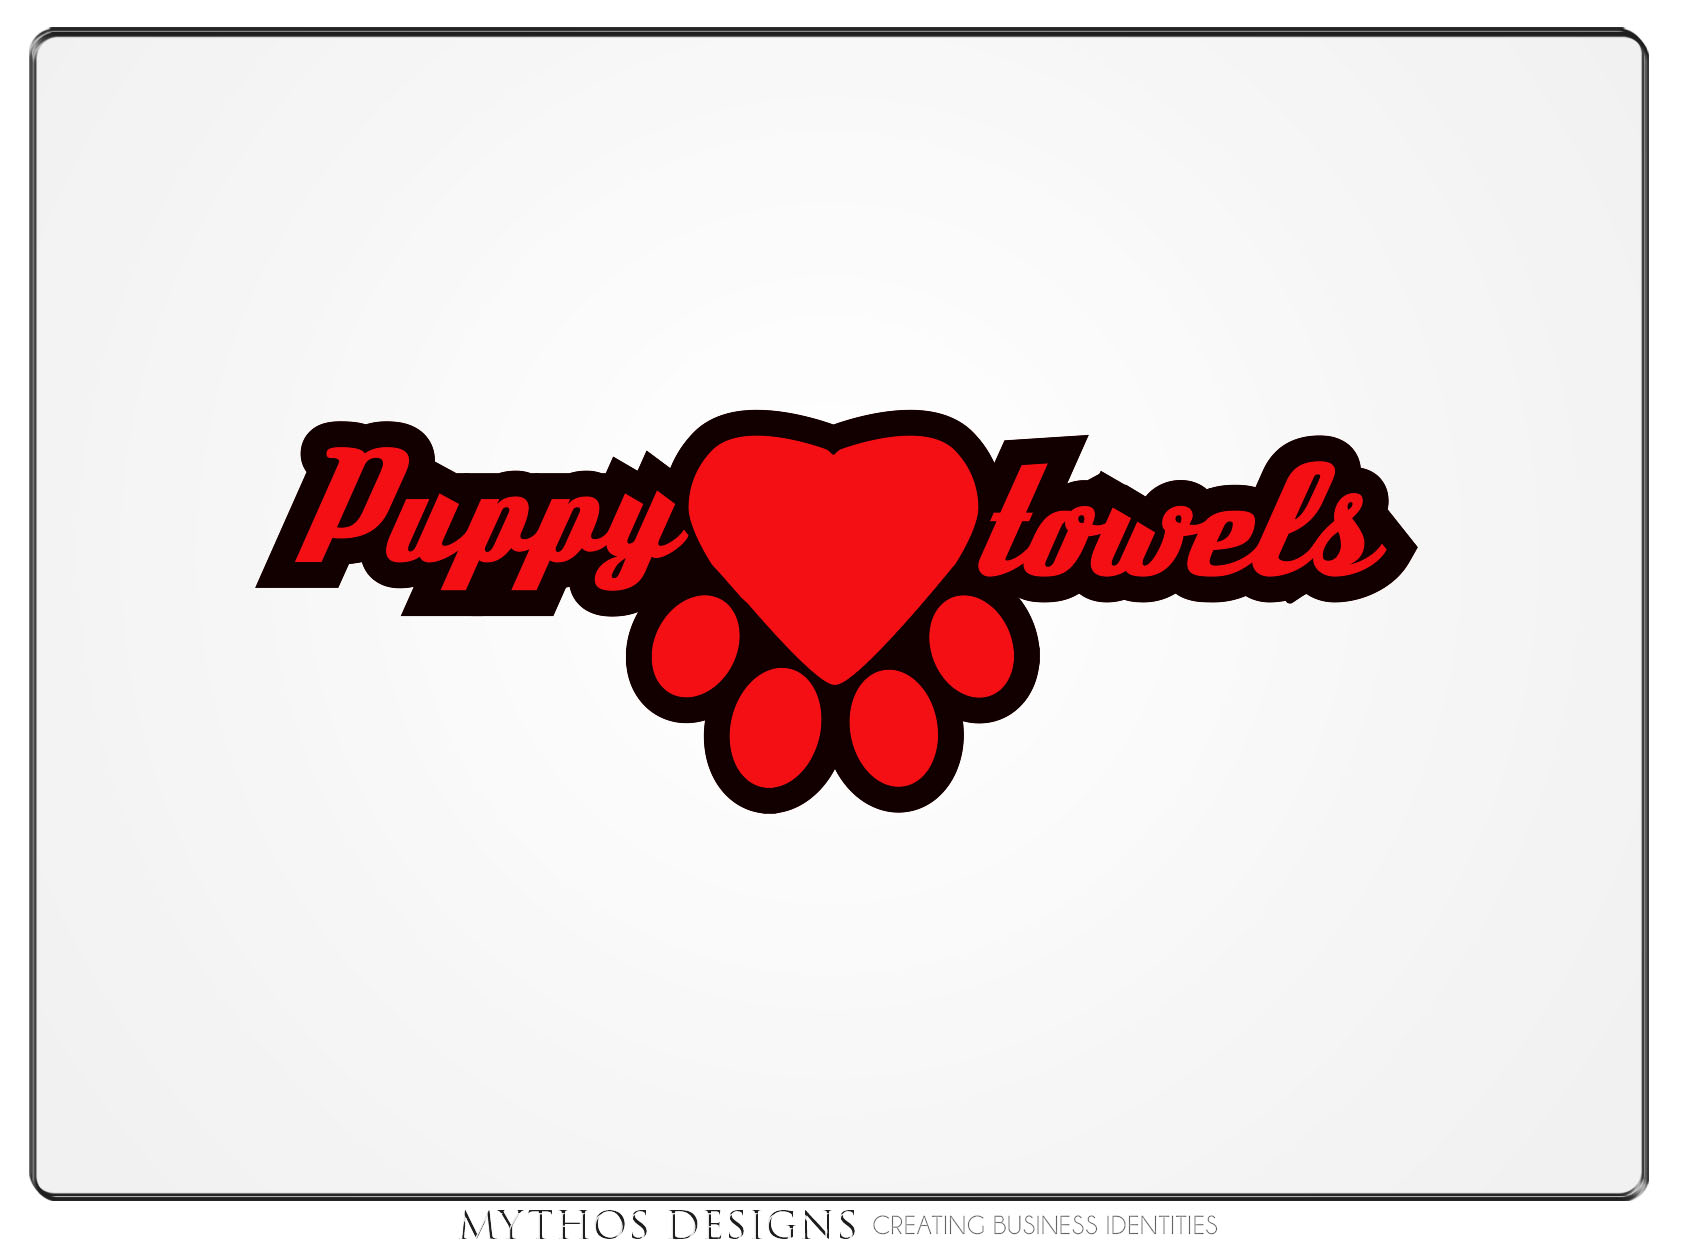 Logo Design by Mythos Designs - Entry No. 47 in the Logo Design Contest Artistic Logo Design for Puppy Love Towels.